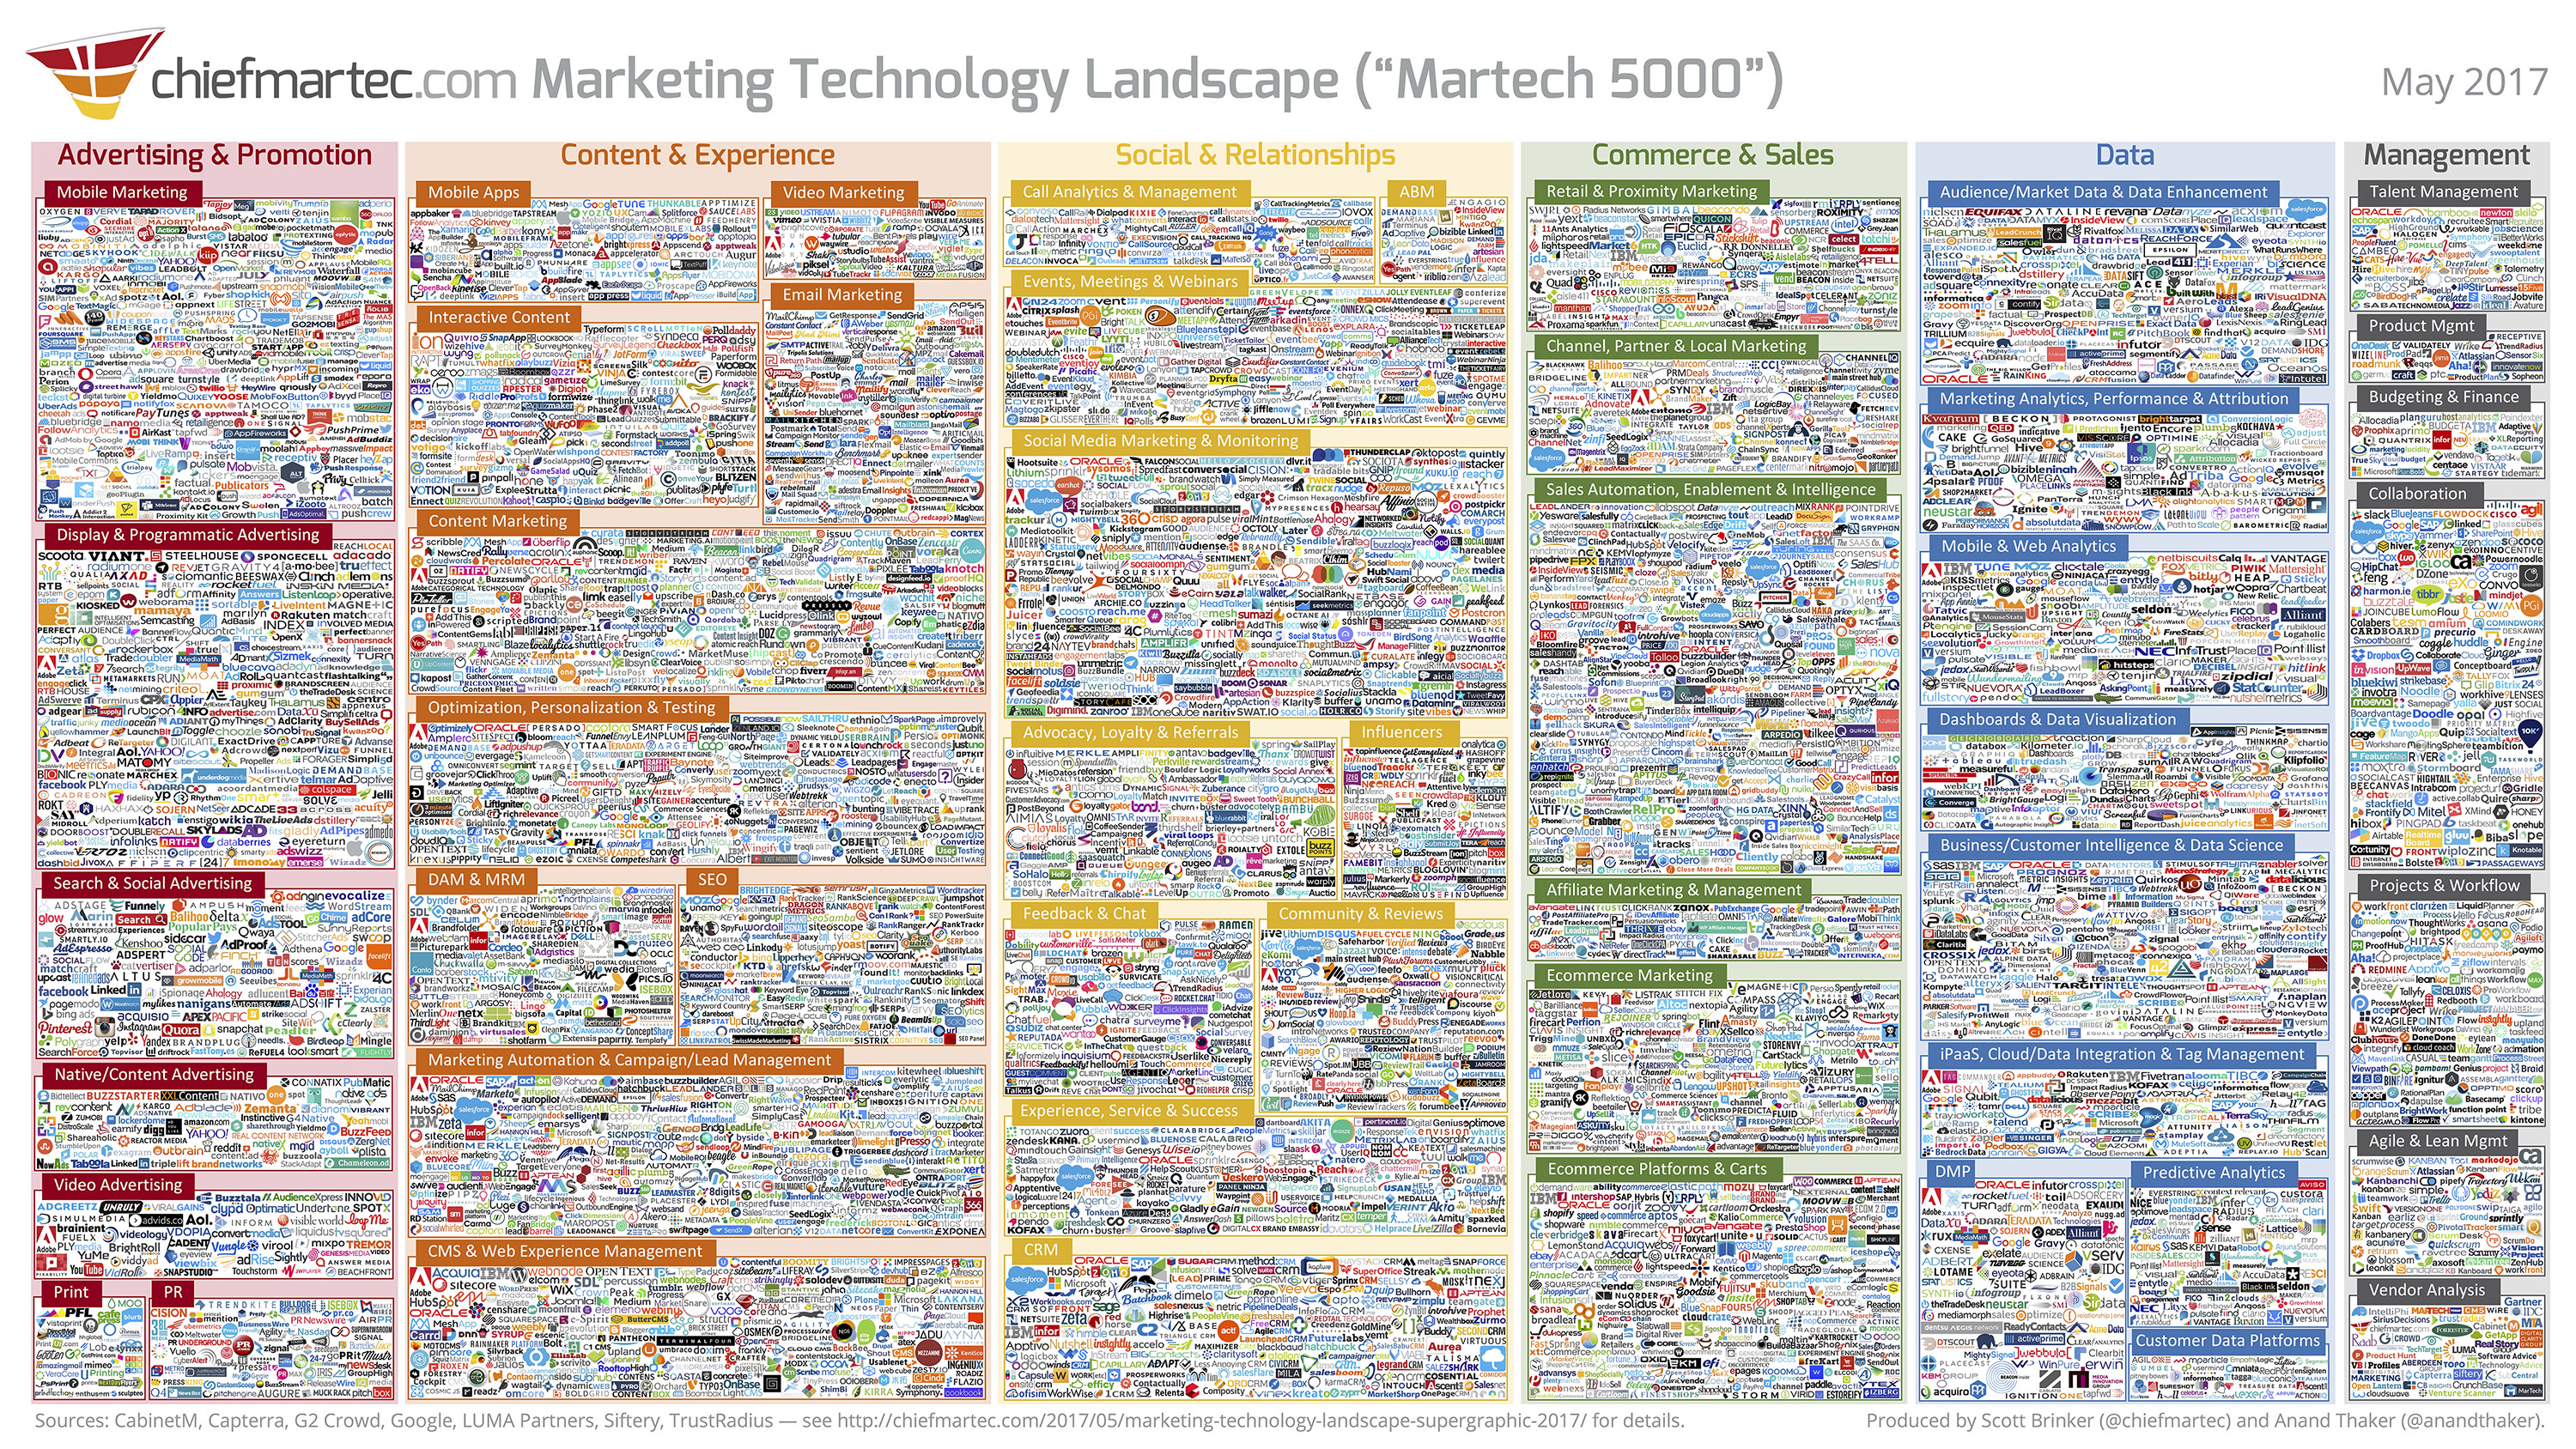 Brinker Martech Lumascape Swells To More Than 5000 Players